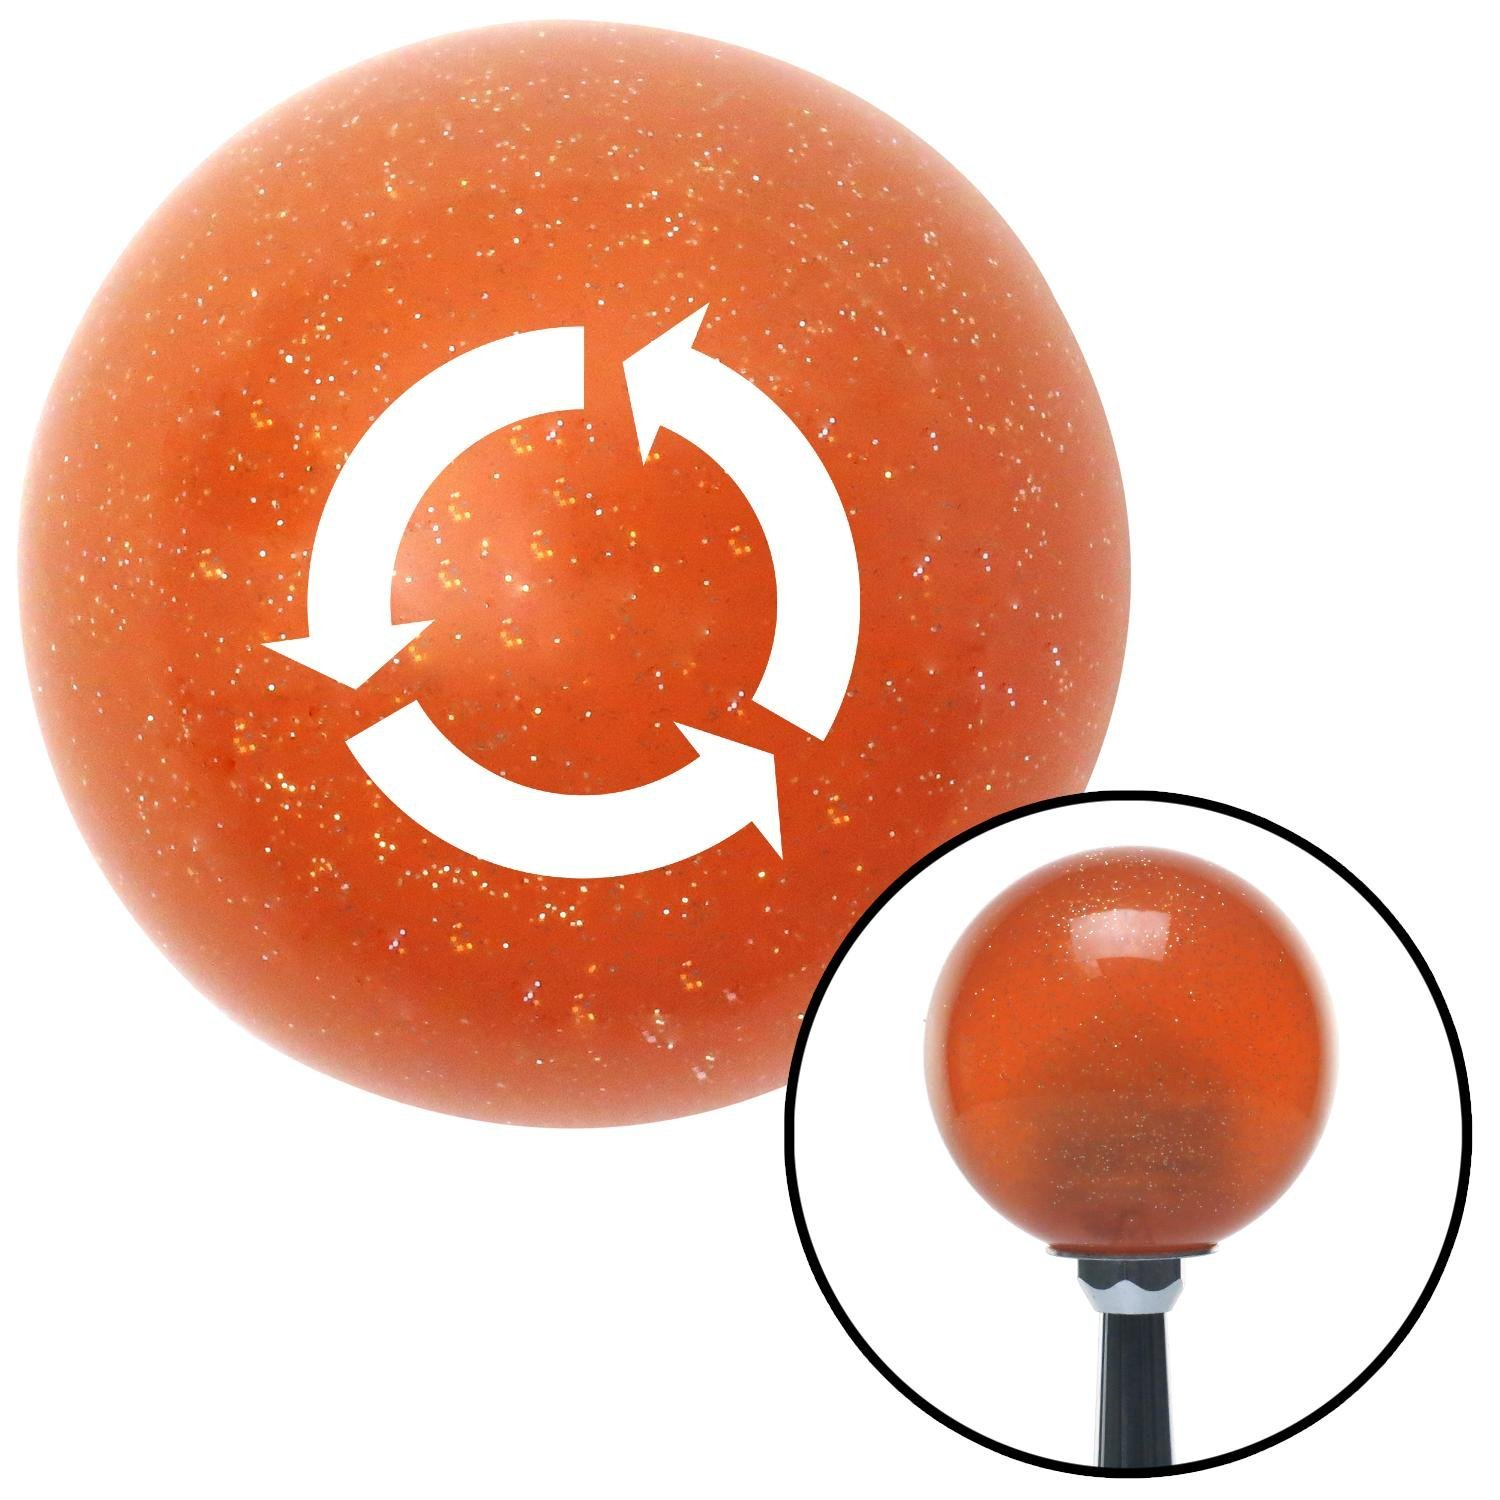 White Arrows in Circle American Shifter 36679 Orange Metal Flake Shift Knob with 16mm x 1.5mm Insert